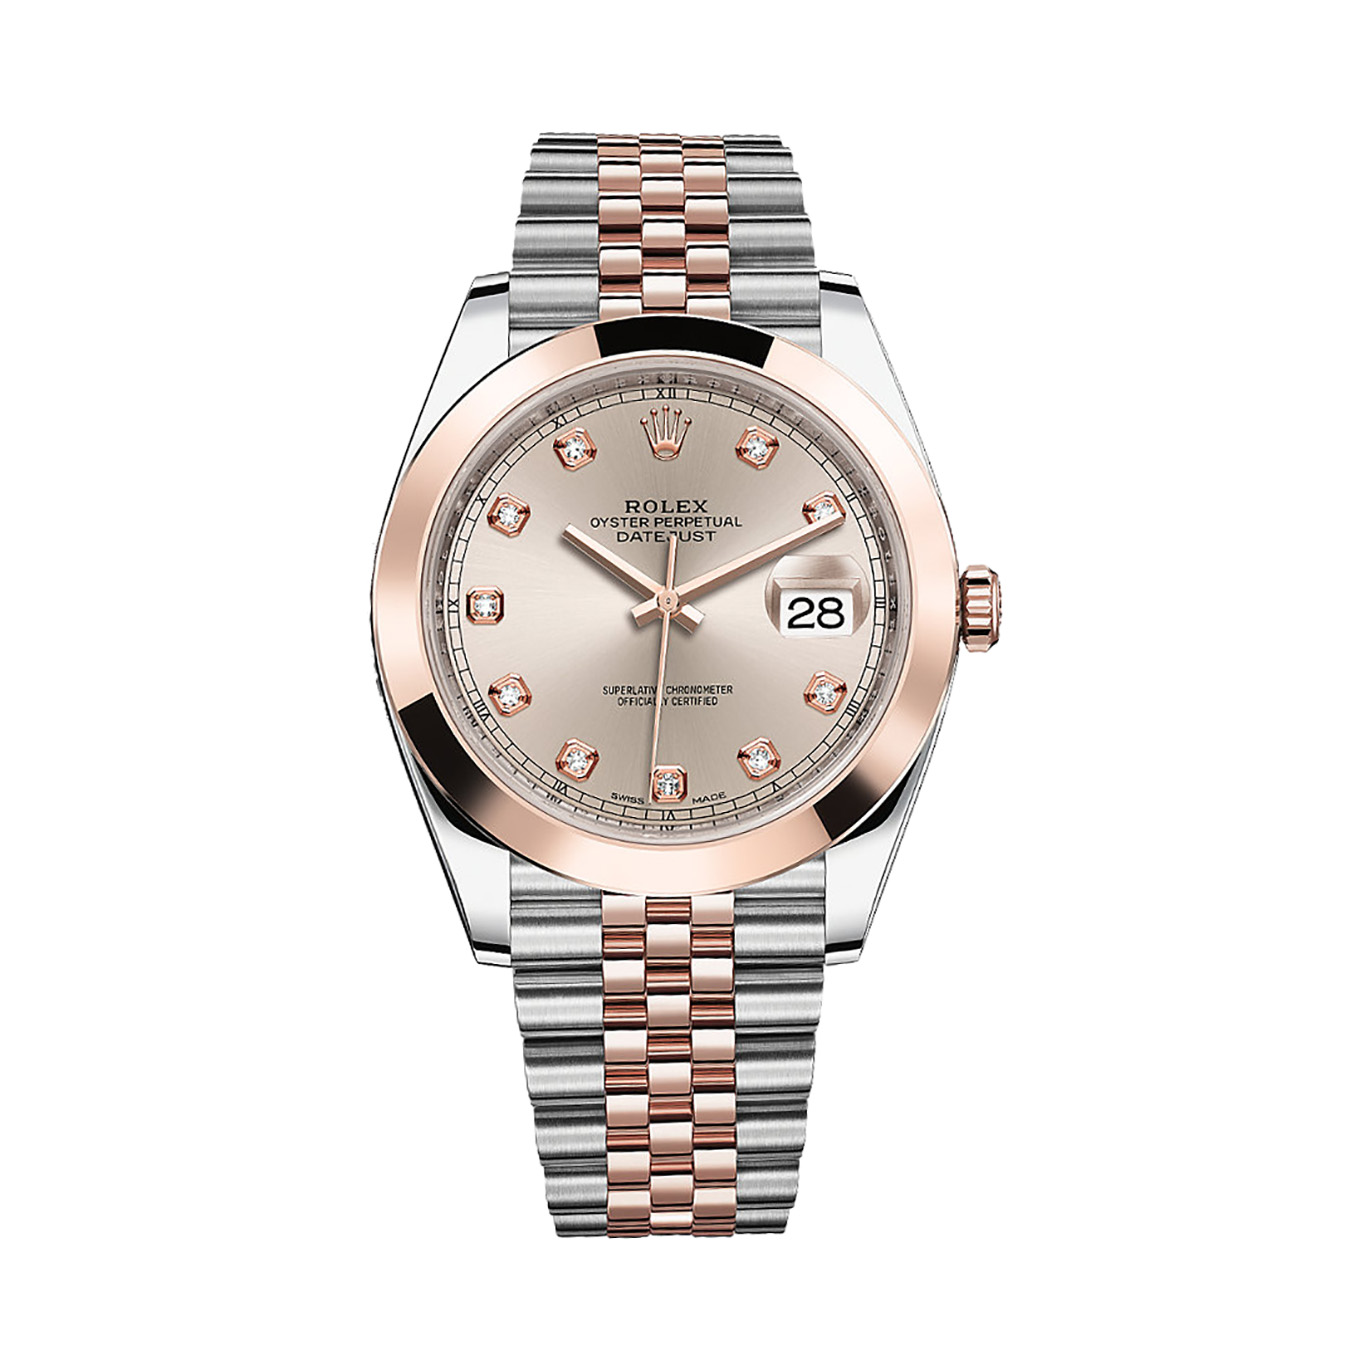 Rolex Oyster Perpetual Rose Gold Rolex Datejust 41 126301 Rose Gold Stainless Steel Watch Sundust Set With Diamonds